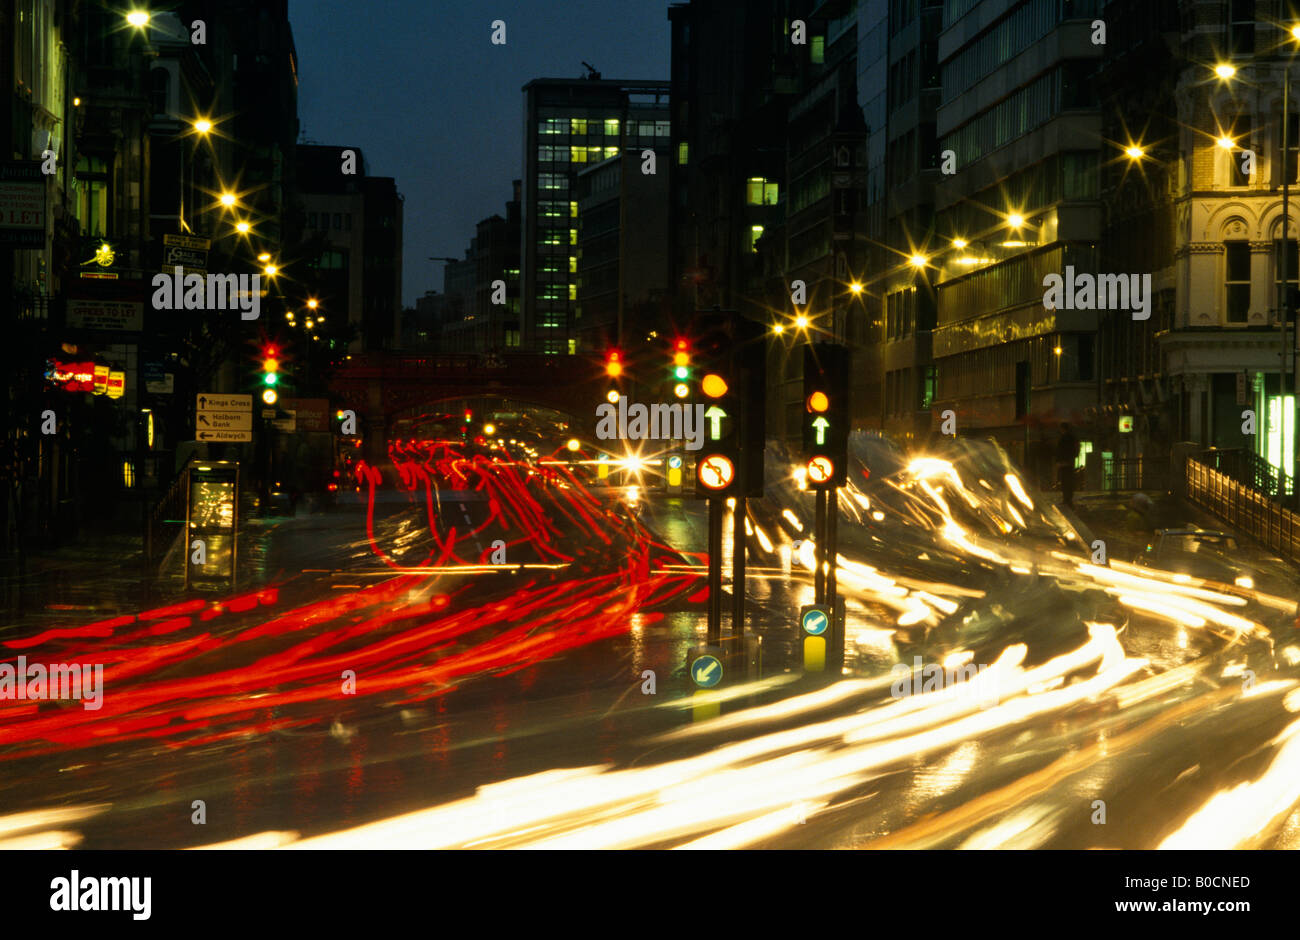 Traffic lights blurring at night over the junction of Farringdon road and Fleet Street in the City of London - Stock Image